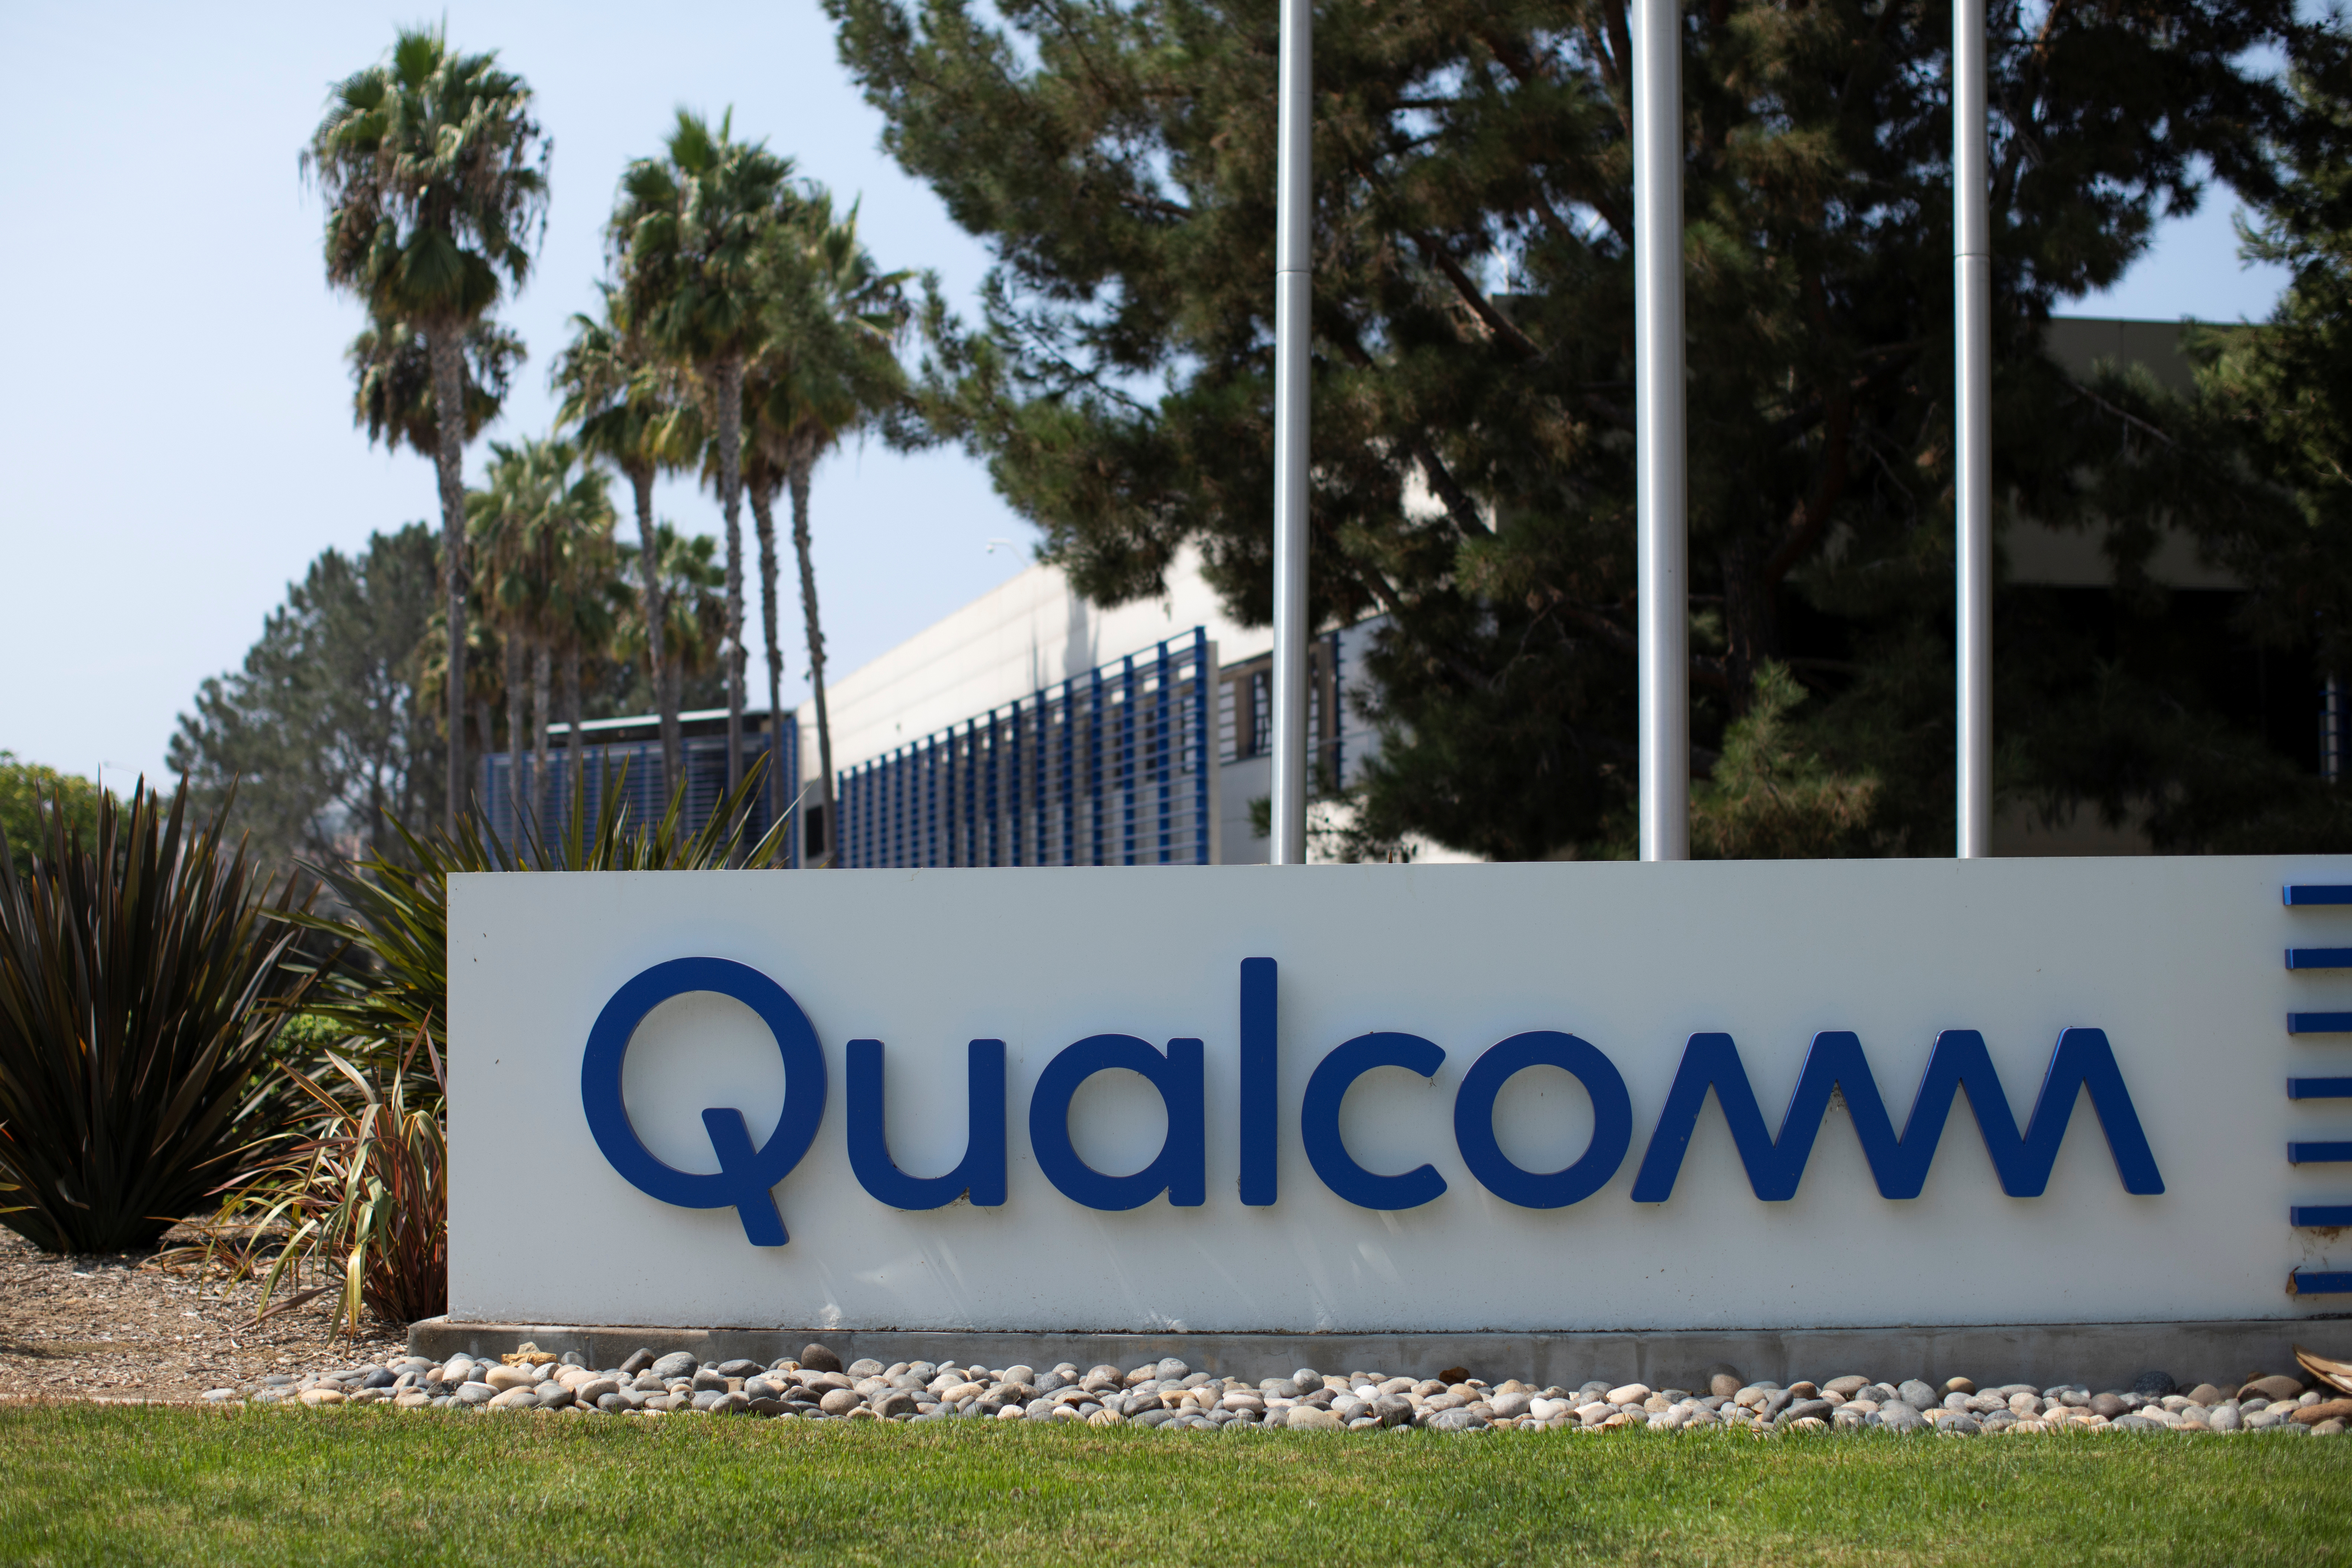 A Qualcomm sign is shown outside one of the company's many buildings in San Diego, California, U.S., September 17, 2020. REUTERS/Mike Blake